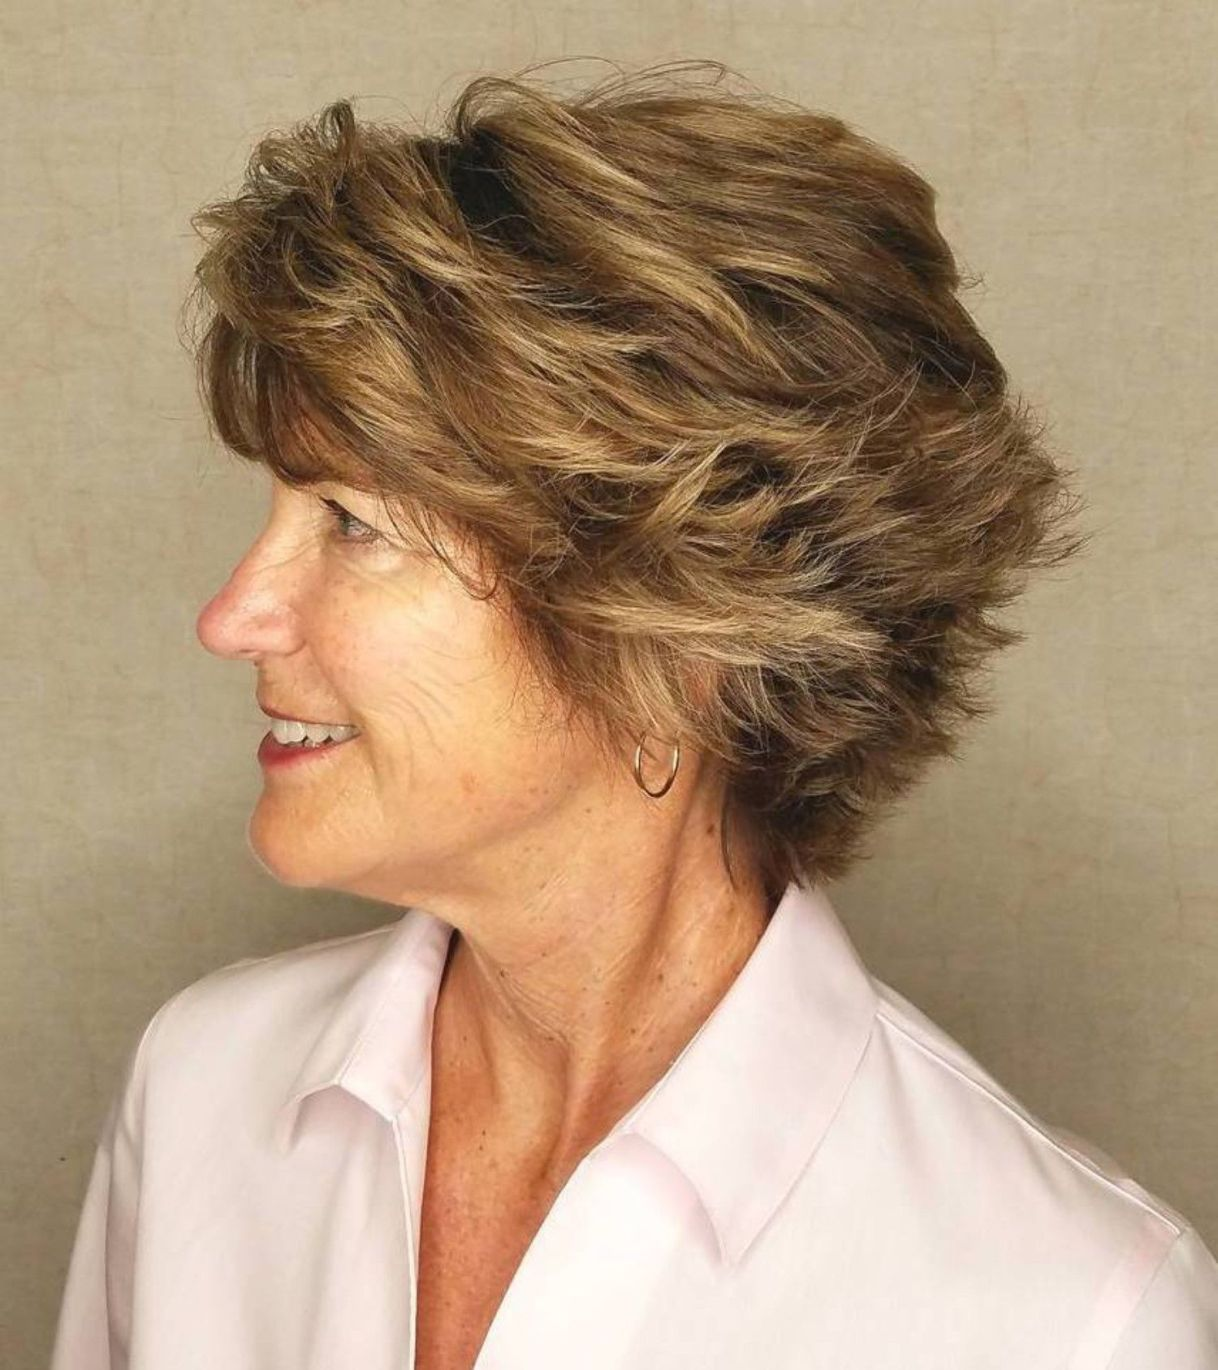 Short Choppy Hairstyle For Thick Hair Short Hair Styles Choppy Hair Thick Hair Styles